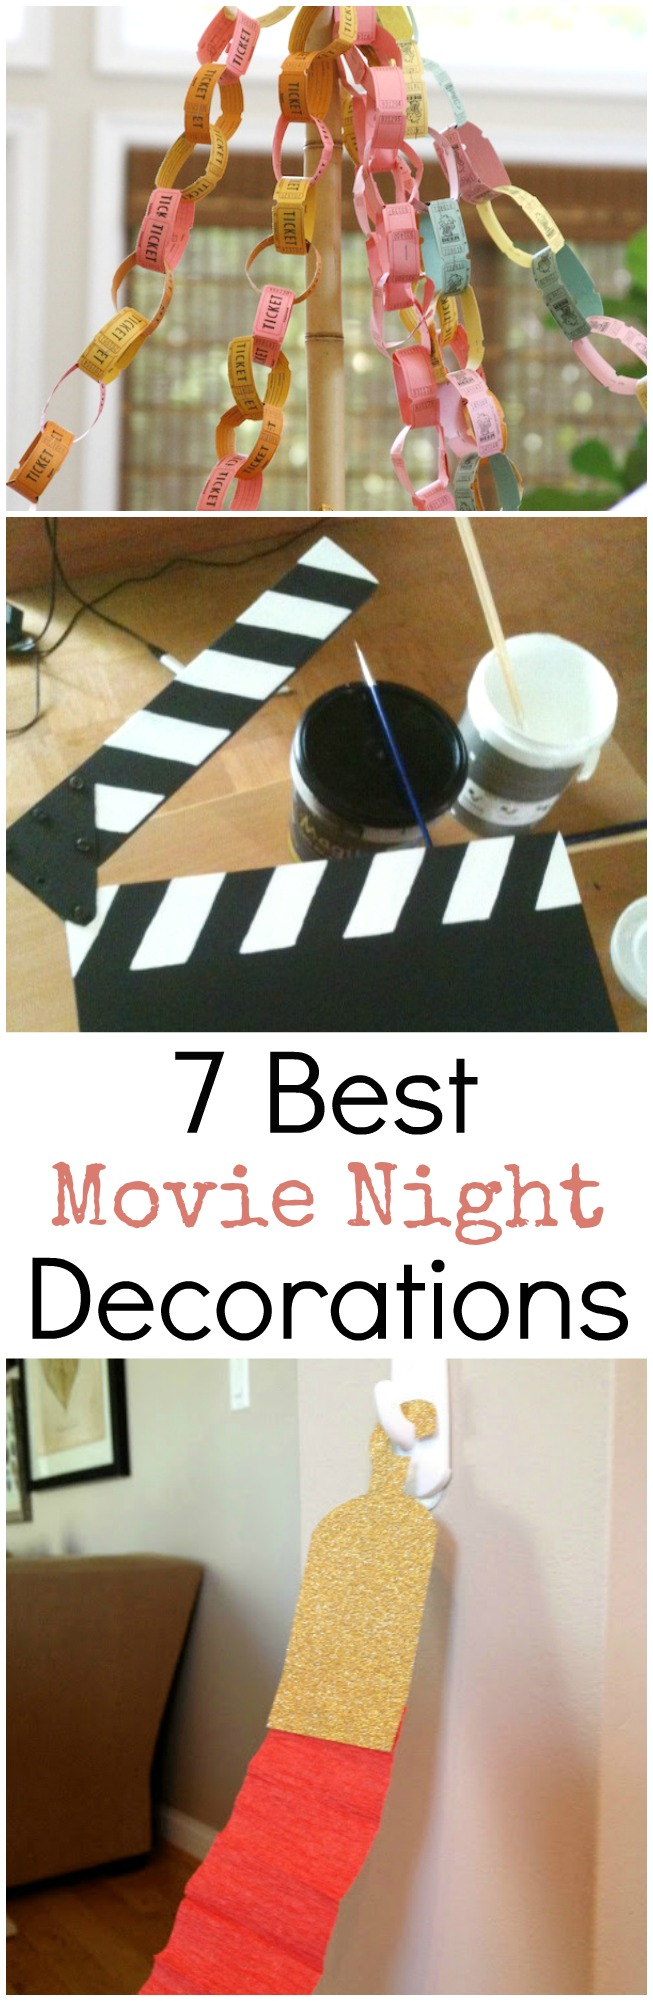 7 Totally Awesome Movie Night Decorations to WOW Your Guests! Great for any Party, Movie Night or Birthday!